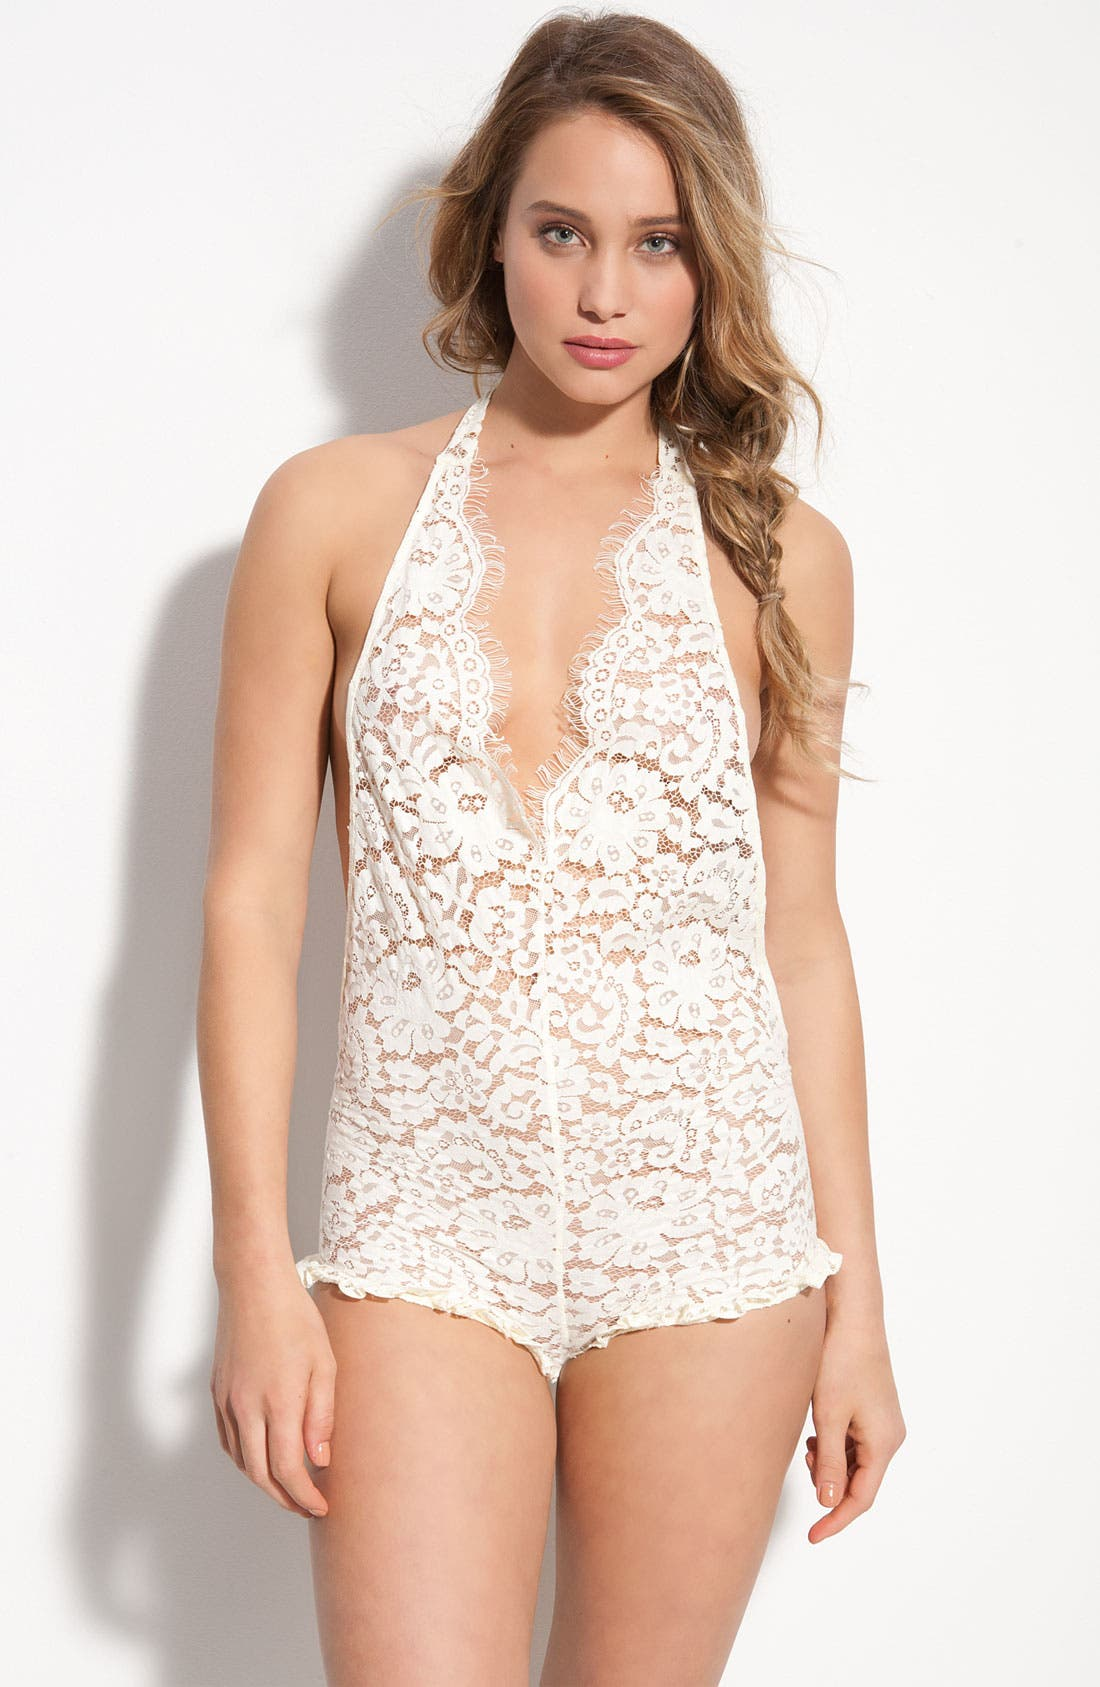 Alternate Image 1 Selected - Zinke 'All Things Nice' Lace Teddy